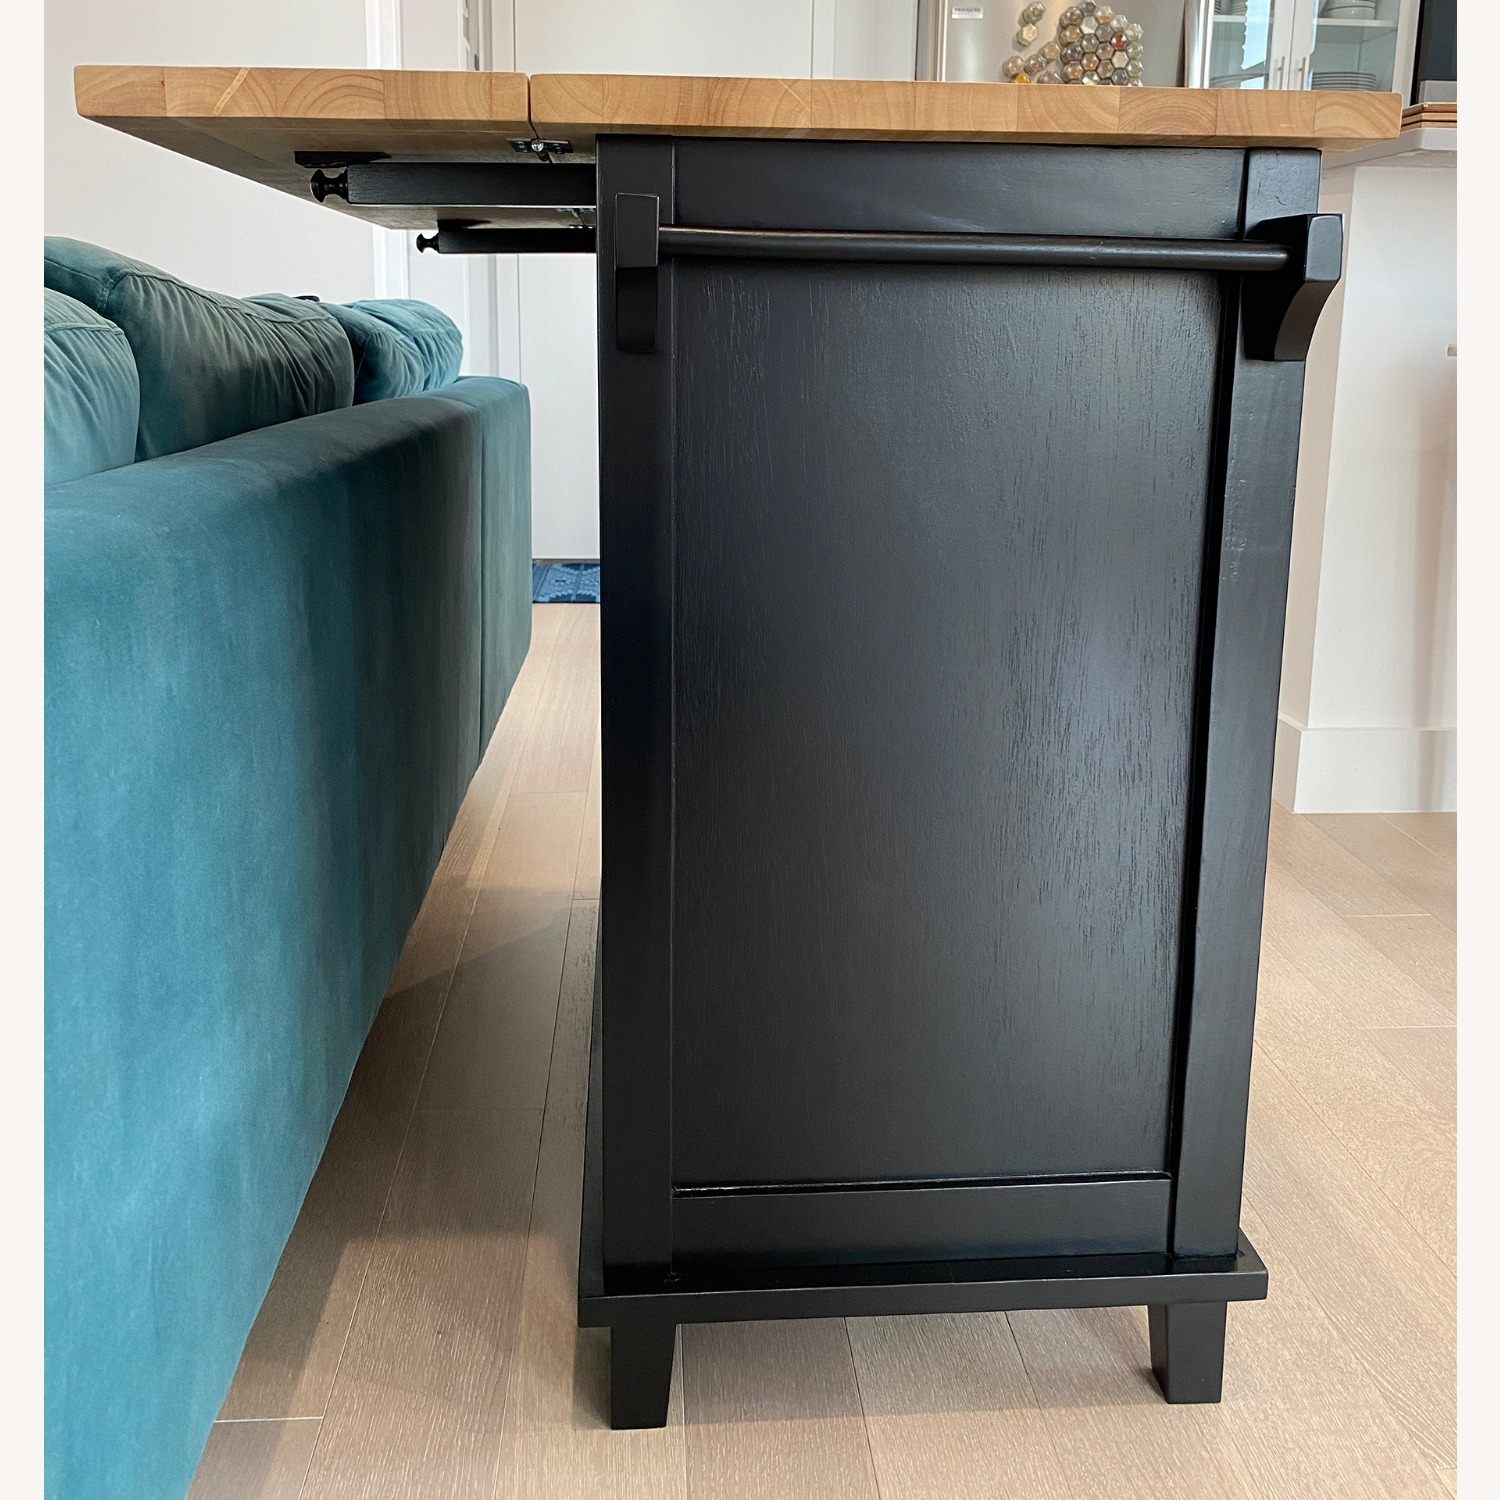 Crate & Barrel Belmont Black Kitchen Island - image-4